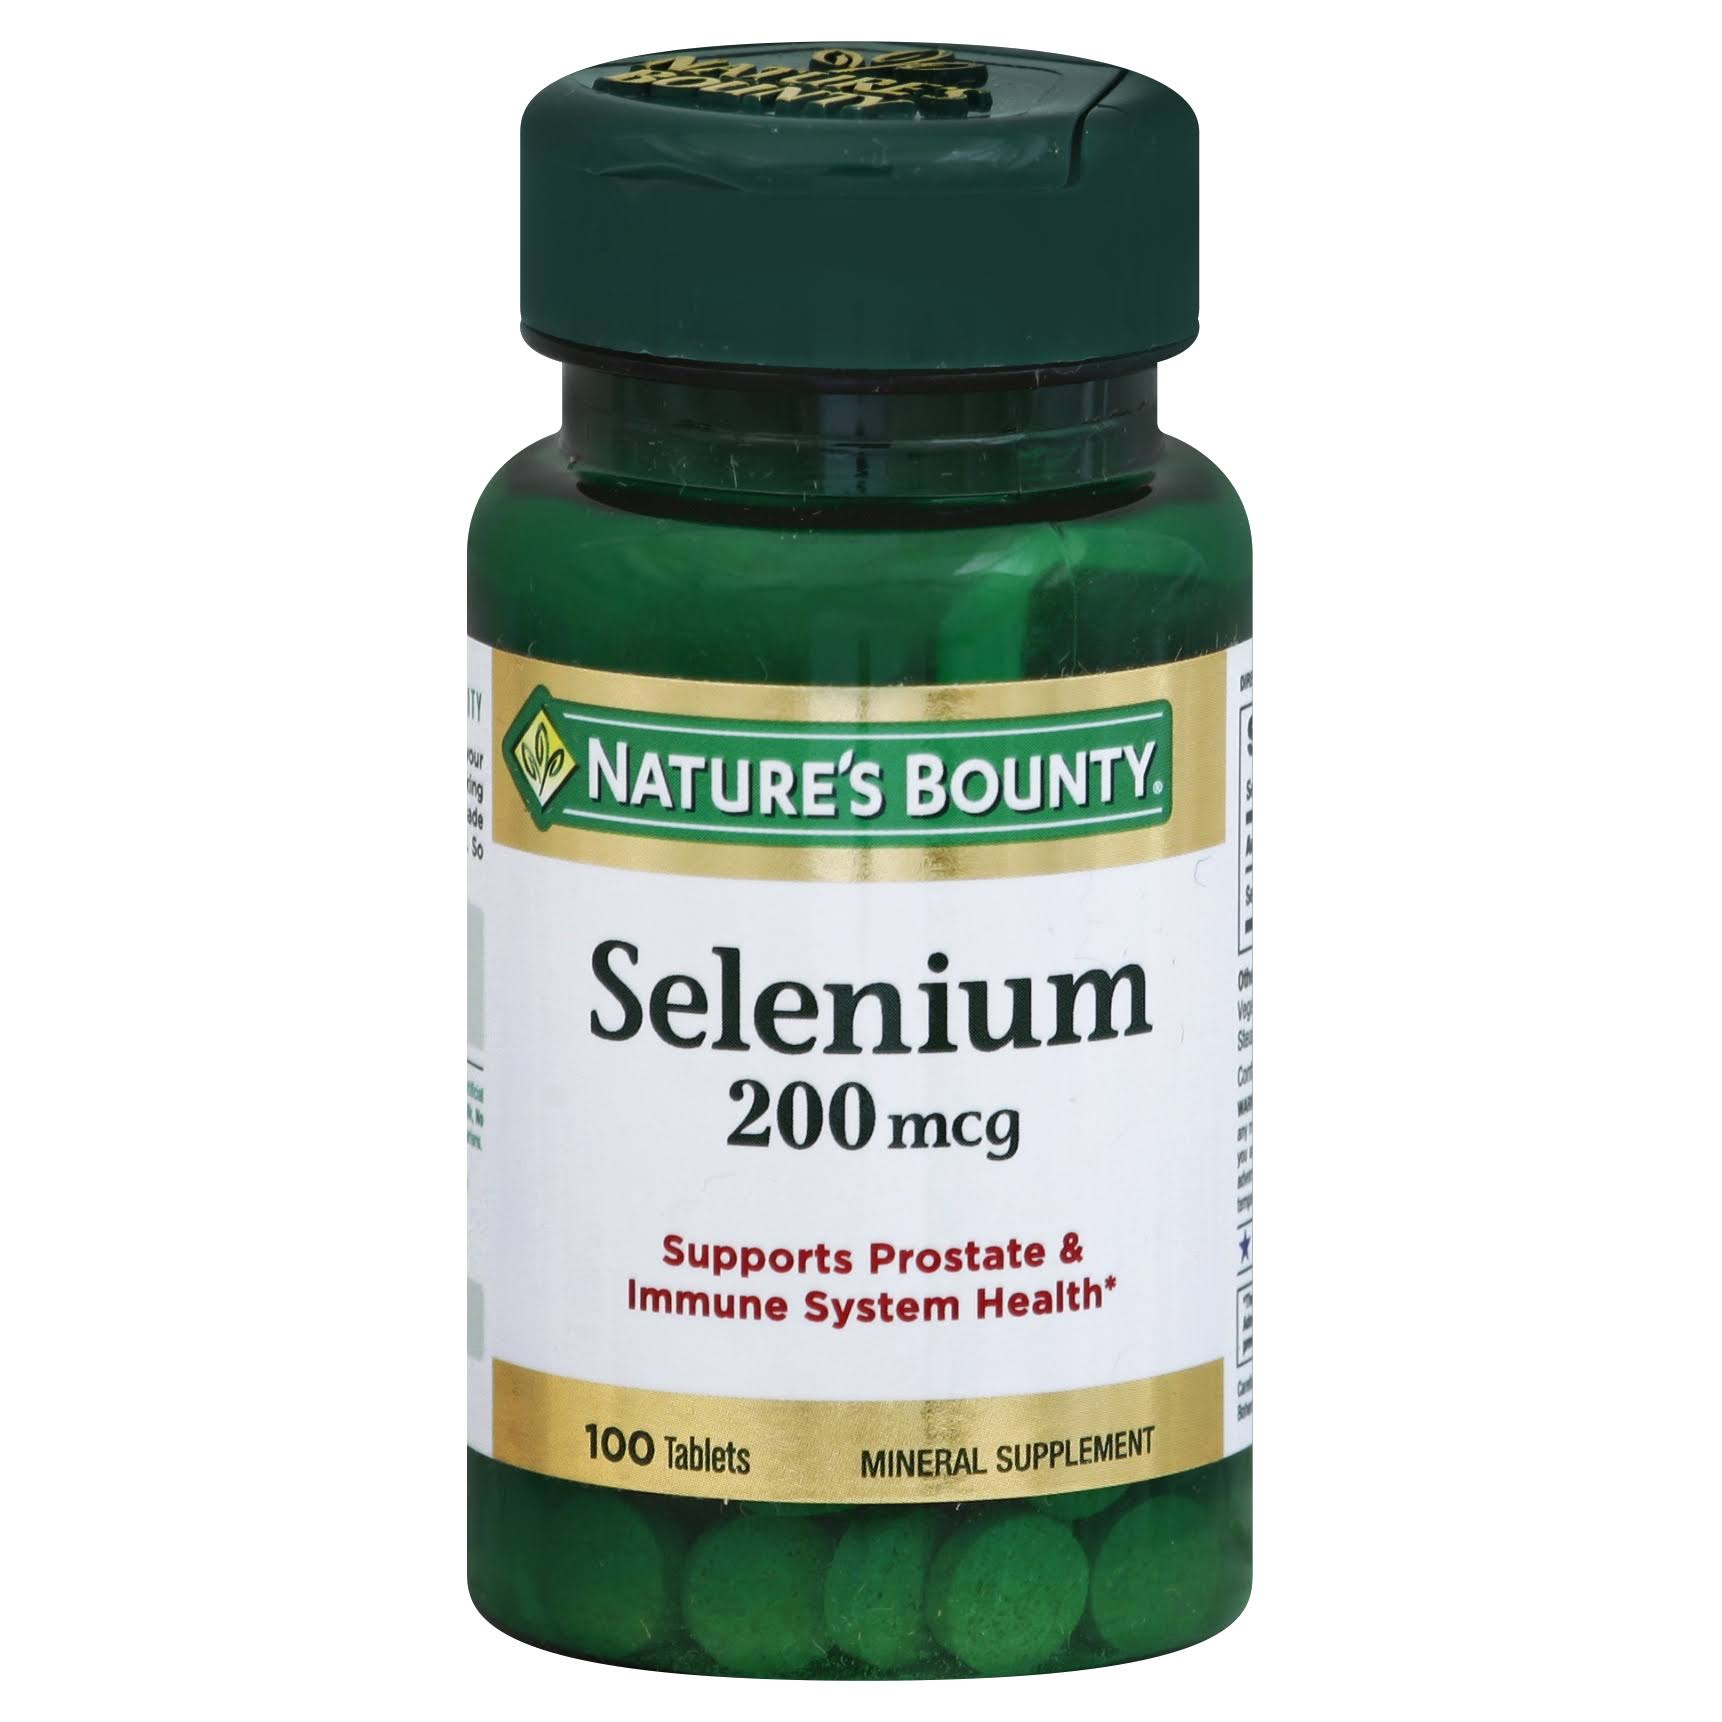 Natures Bounty Selenium Supplement - 200mcg, 100ct